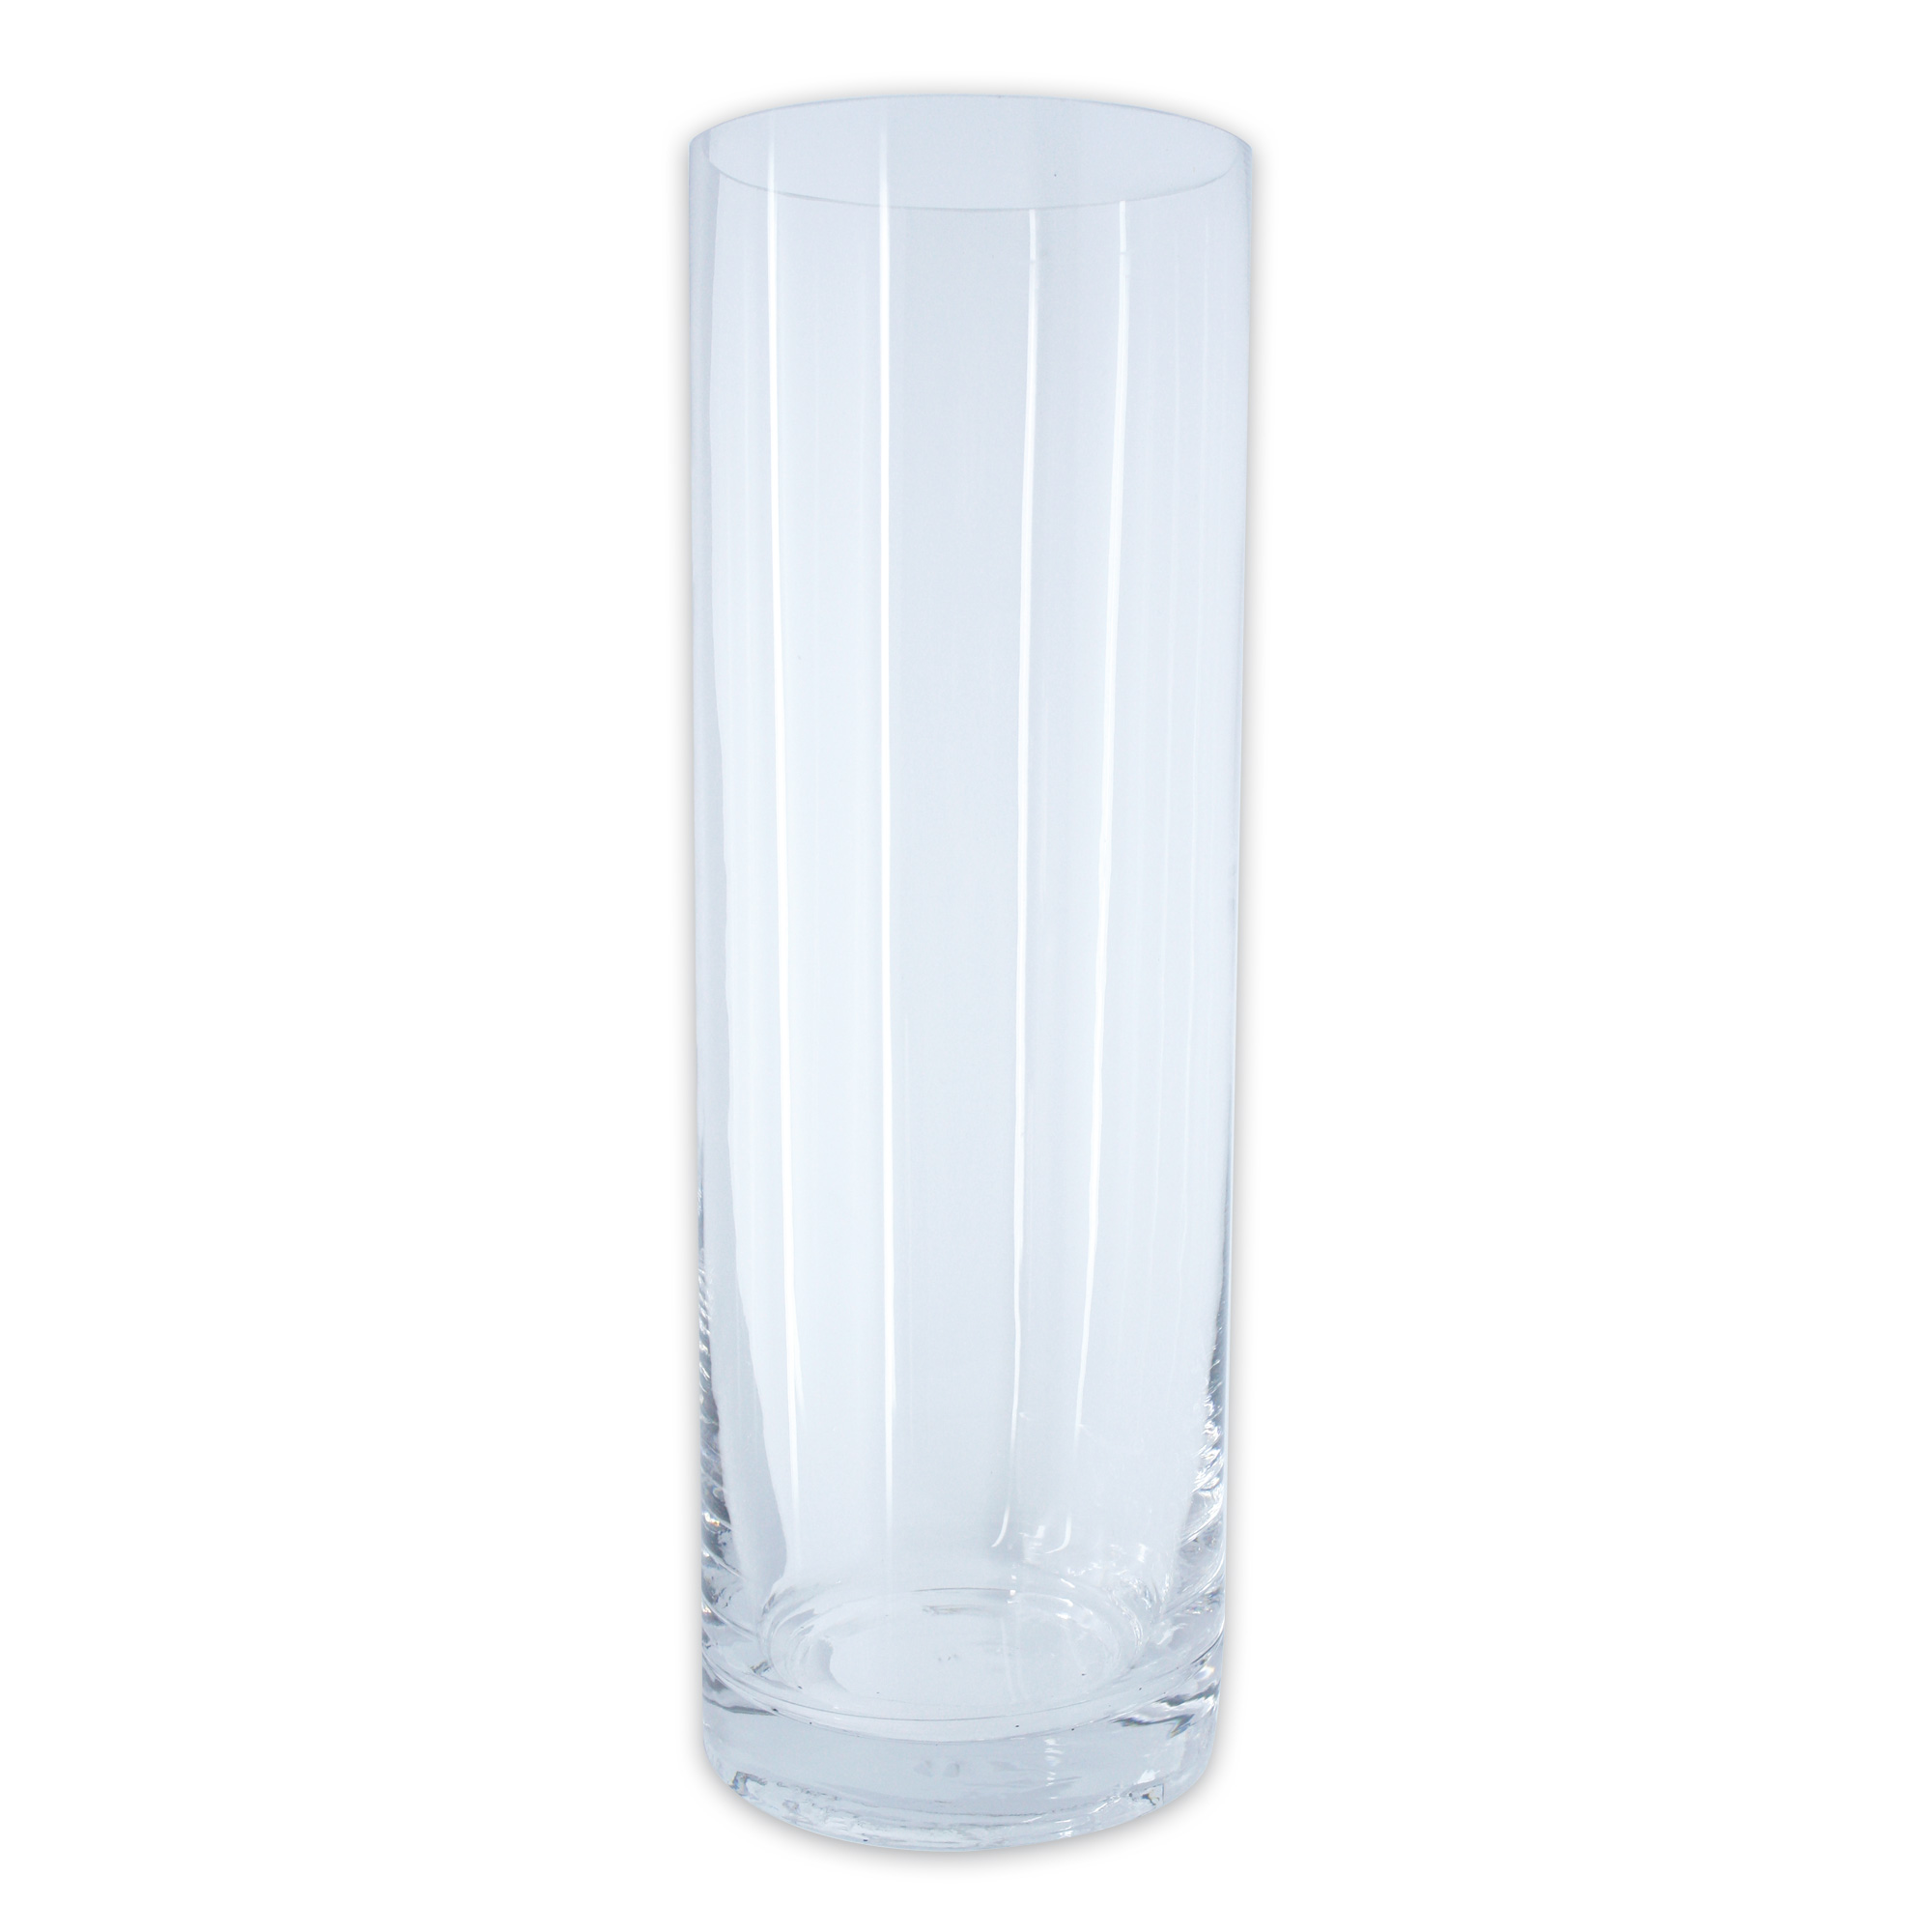 glasvase glas vase blumenvase dekovase windlicht glaszylinder h he 30 cm 10 cm ebay. Black Bedroom Furniture Sets. Home Design Ideas